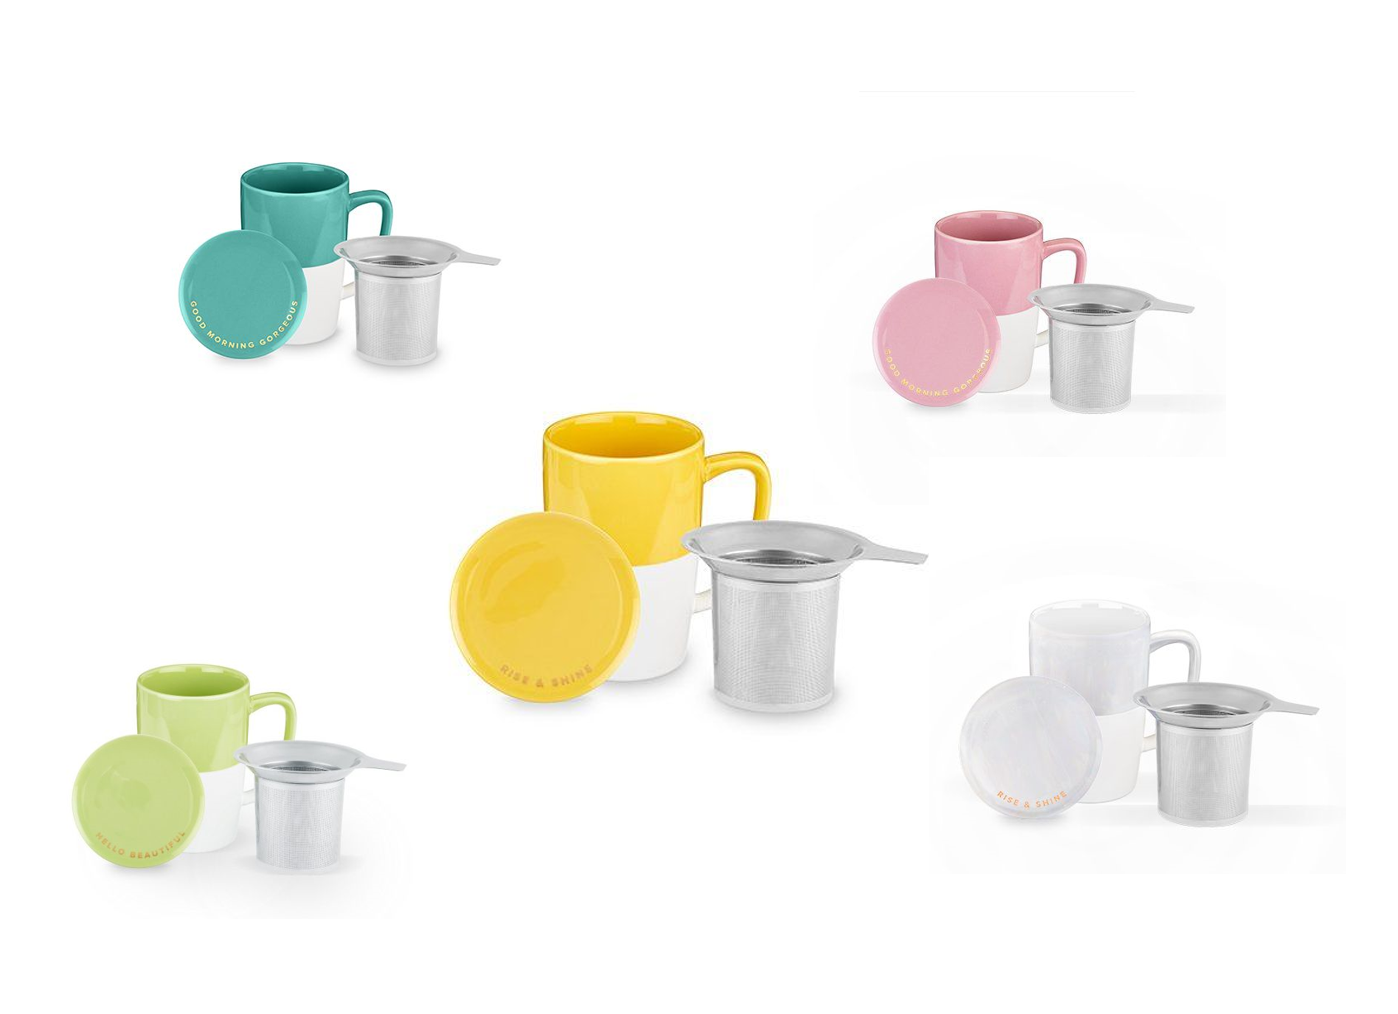 Delia Tea Mug & Infuser by Pinky Up